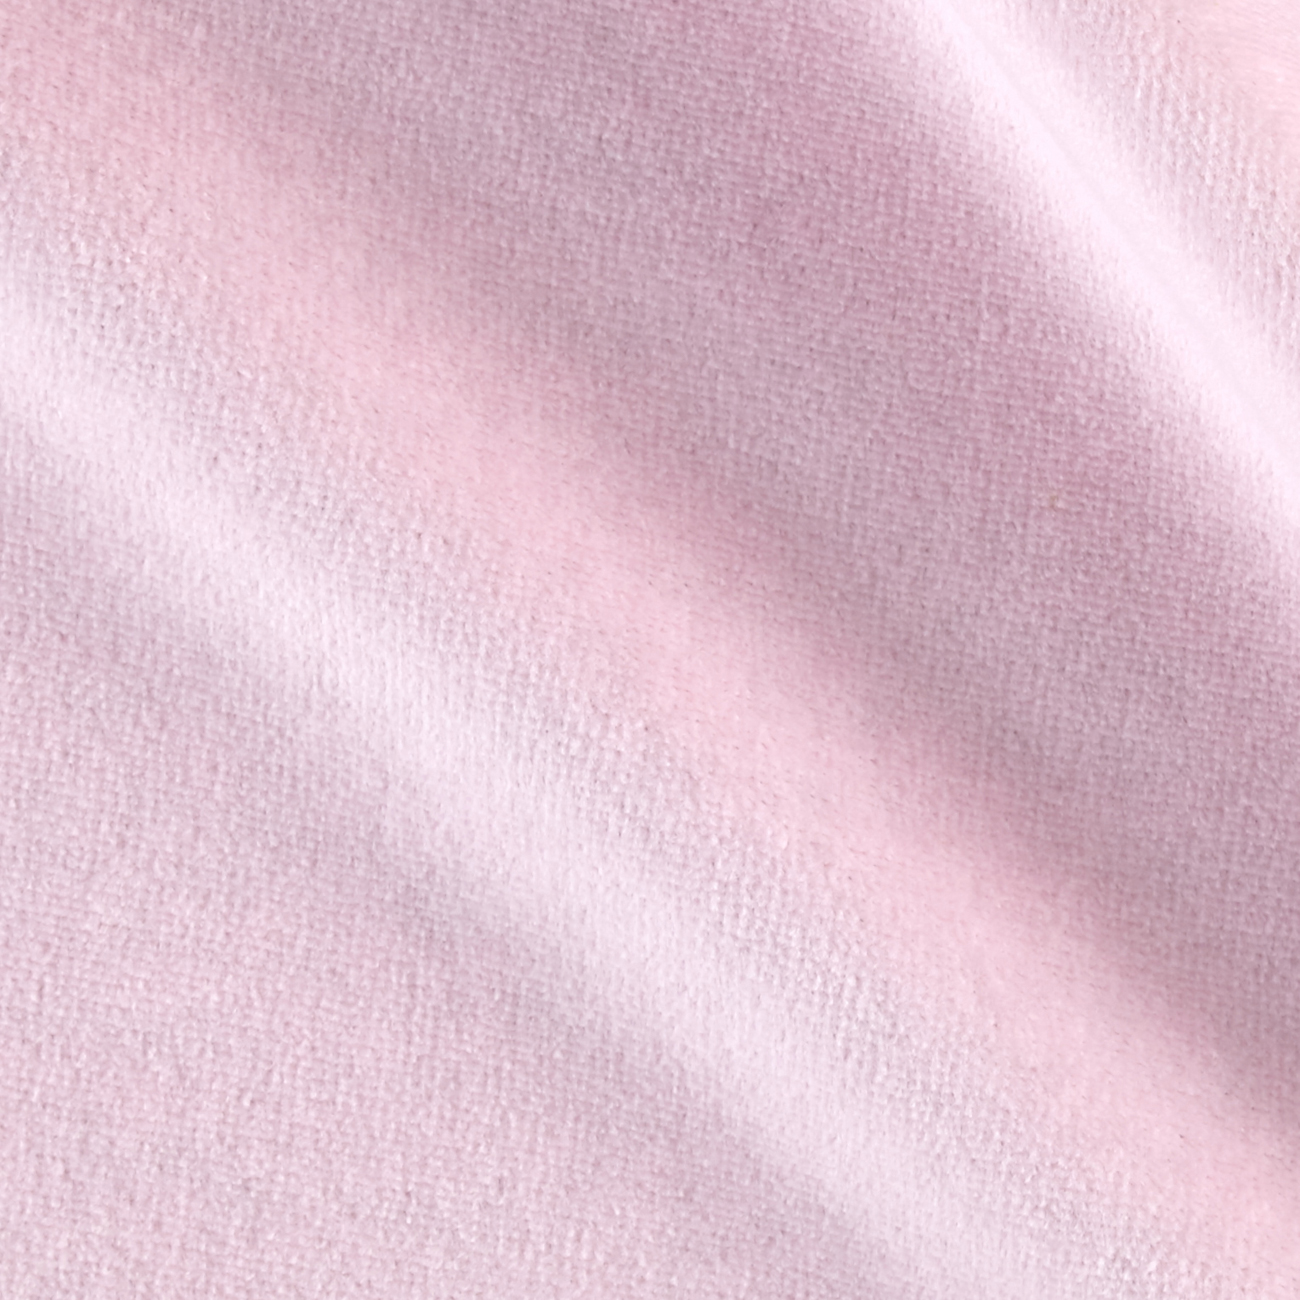 Solid Velour Pink Fabric by Mike Cannety in USA